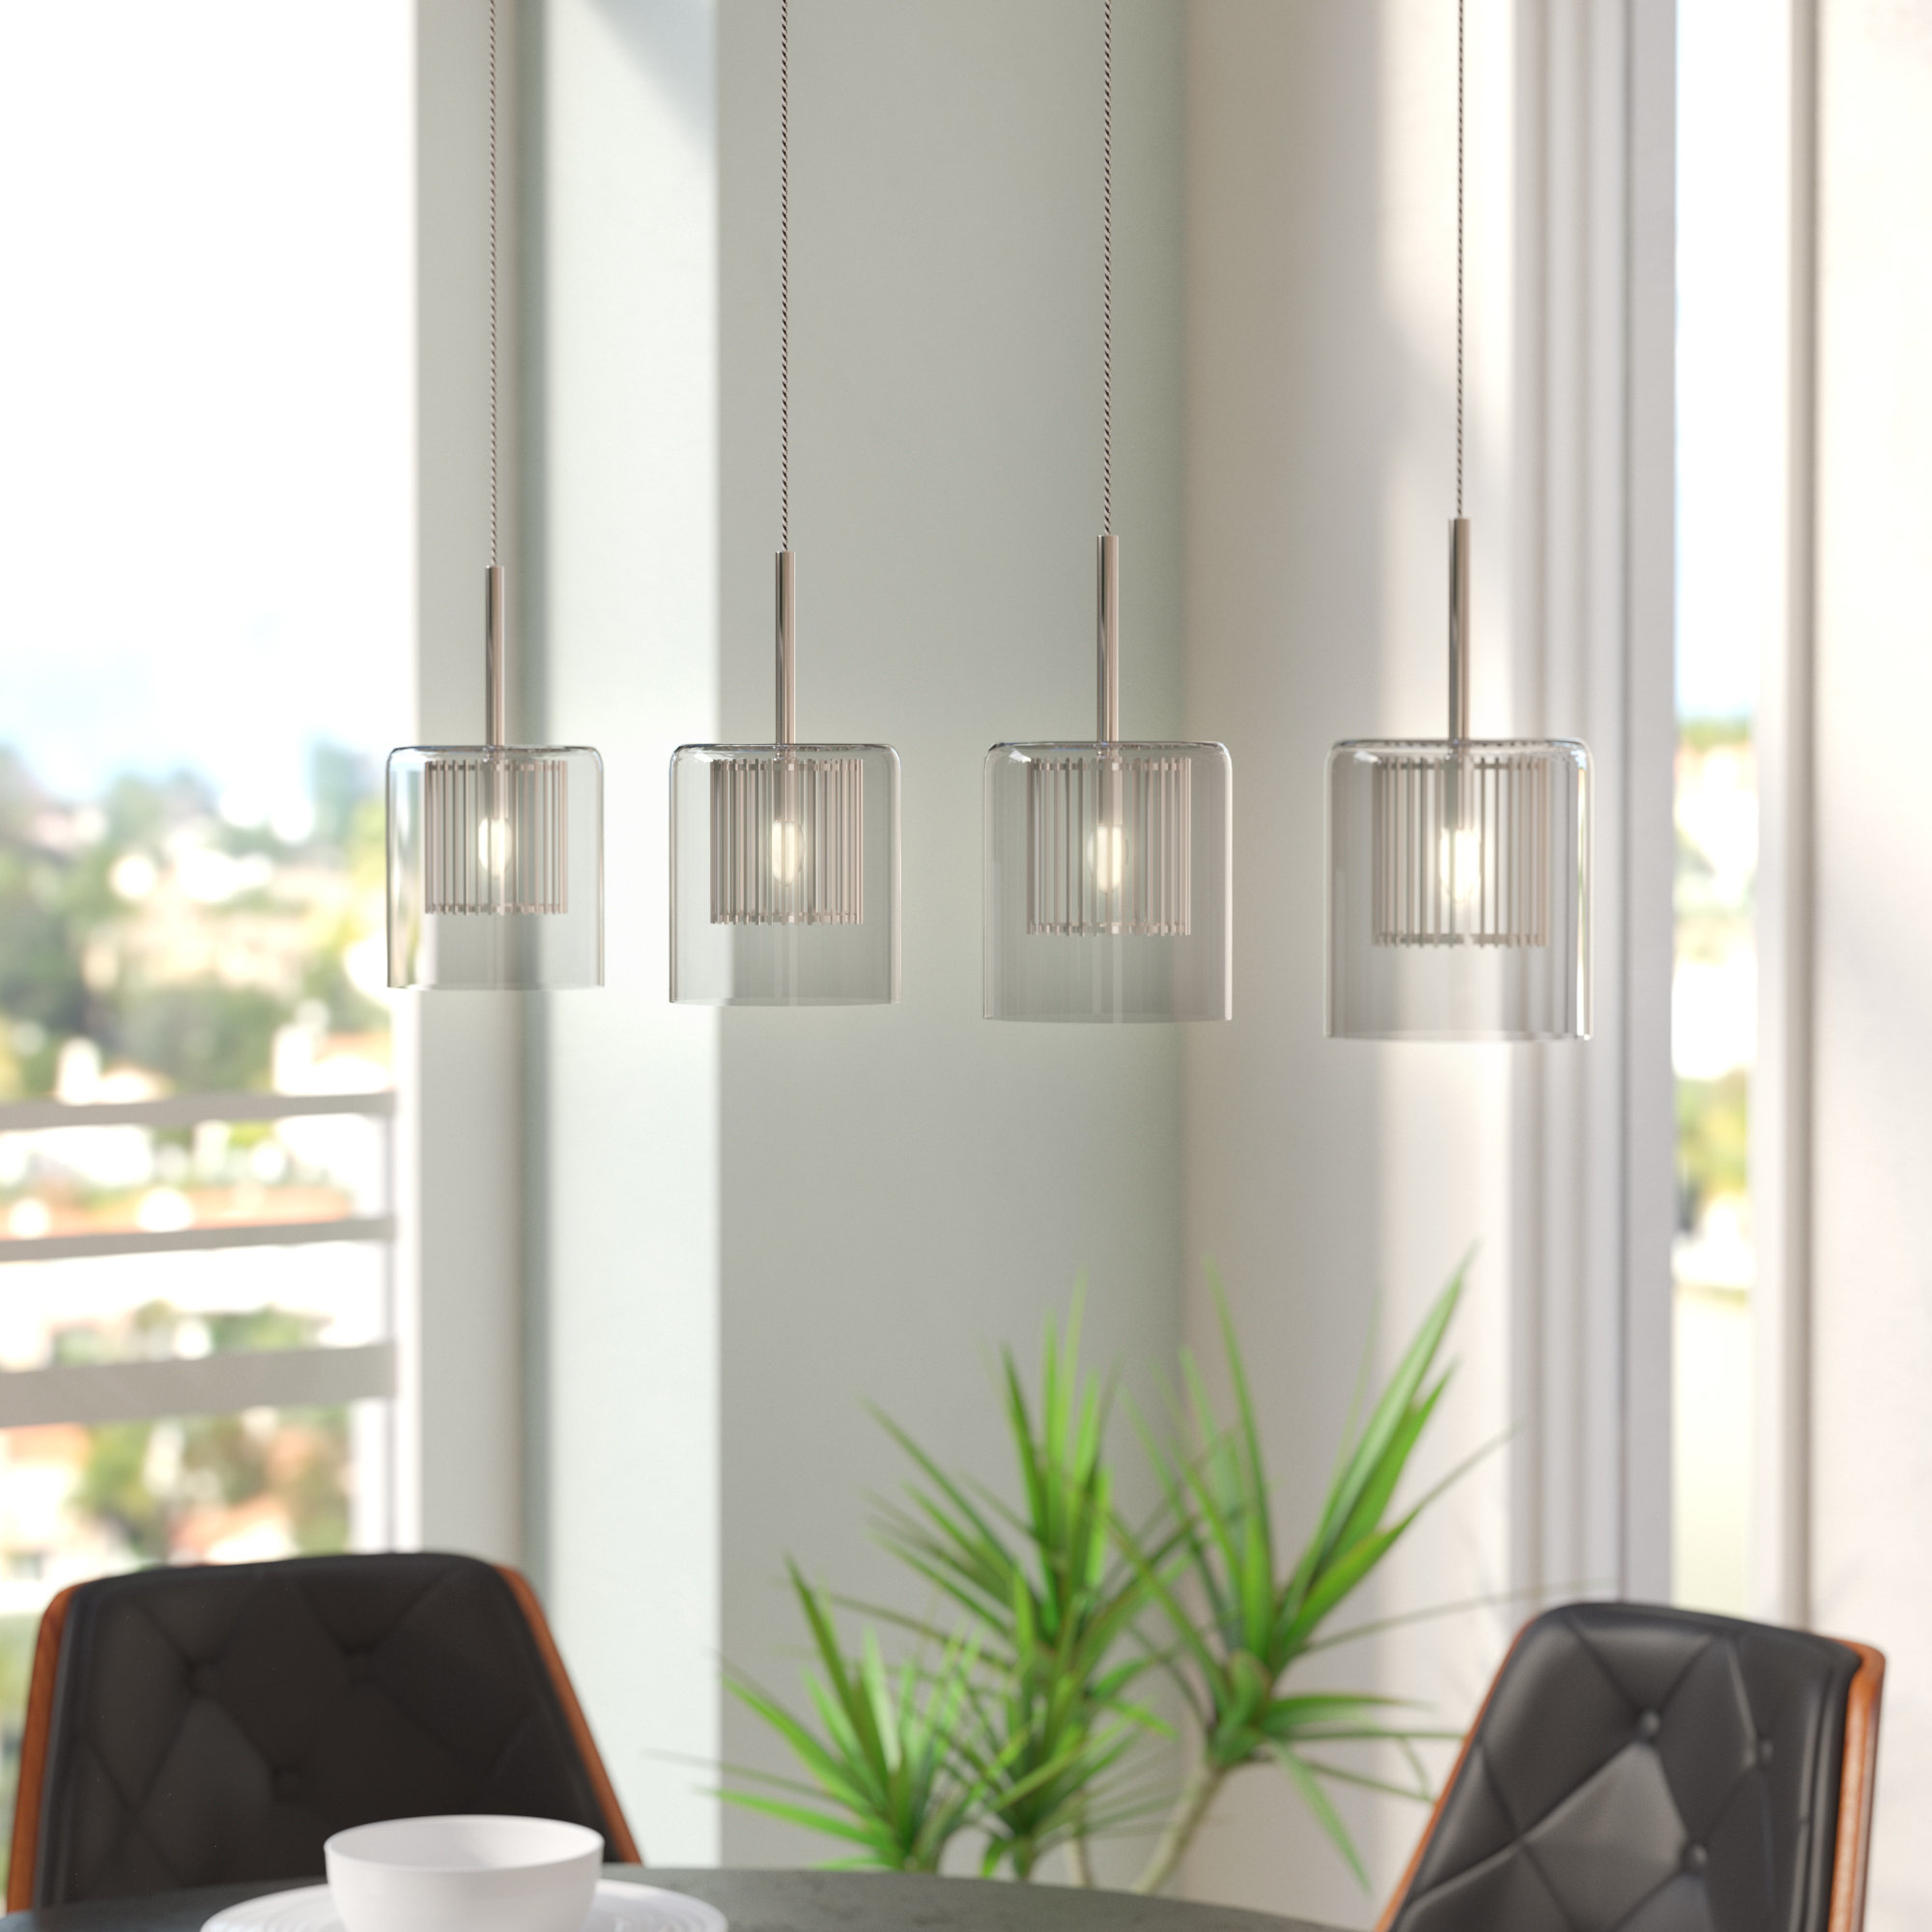 Well Liked Sousa 4 Light Kitchen Island Linear Pendants Pertaining To Cephas 4 Light Kitchen Island Linear Pendant (View 25 of 25)